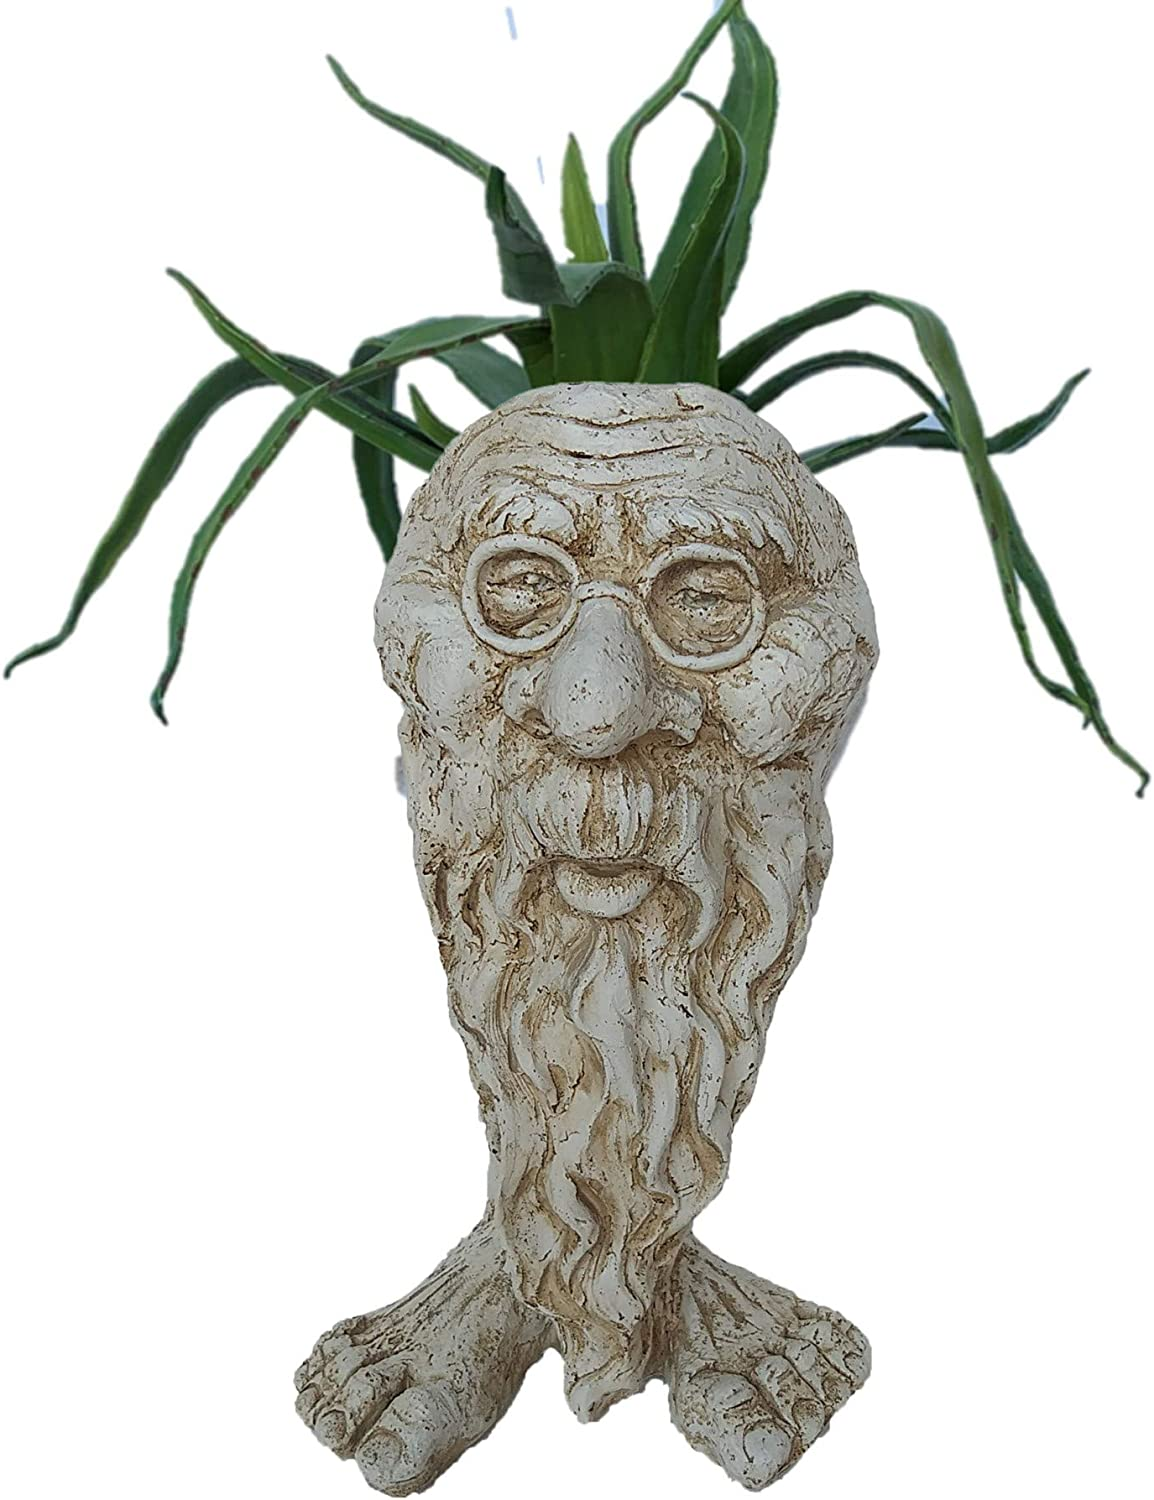 Muggly Great Grandpa RIP Planter Pot Max 49% 70% OFF Outlet OFF Statue Garden Patio Face